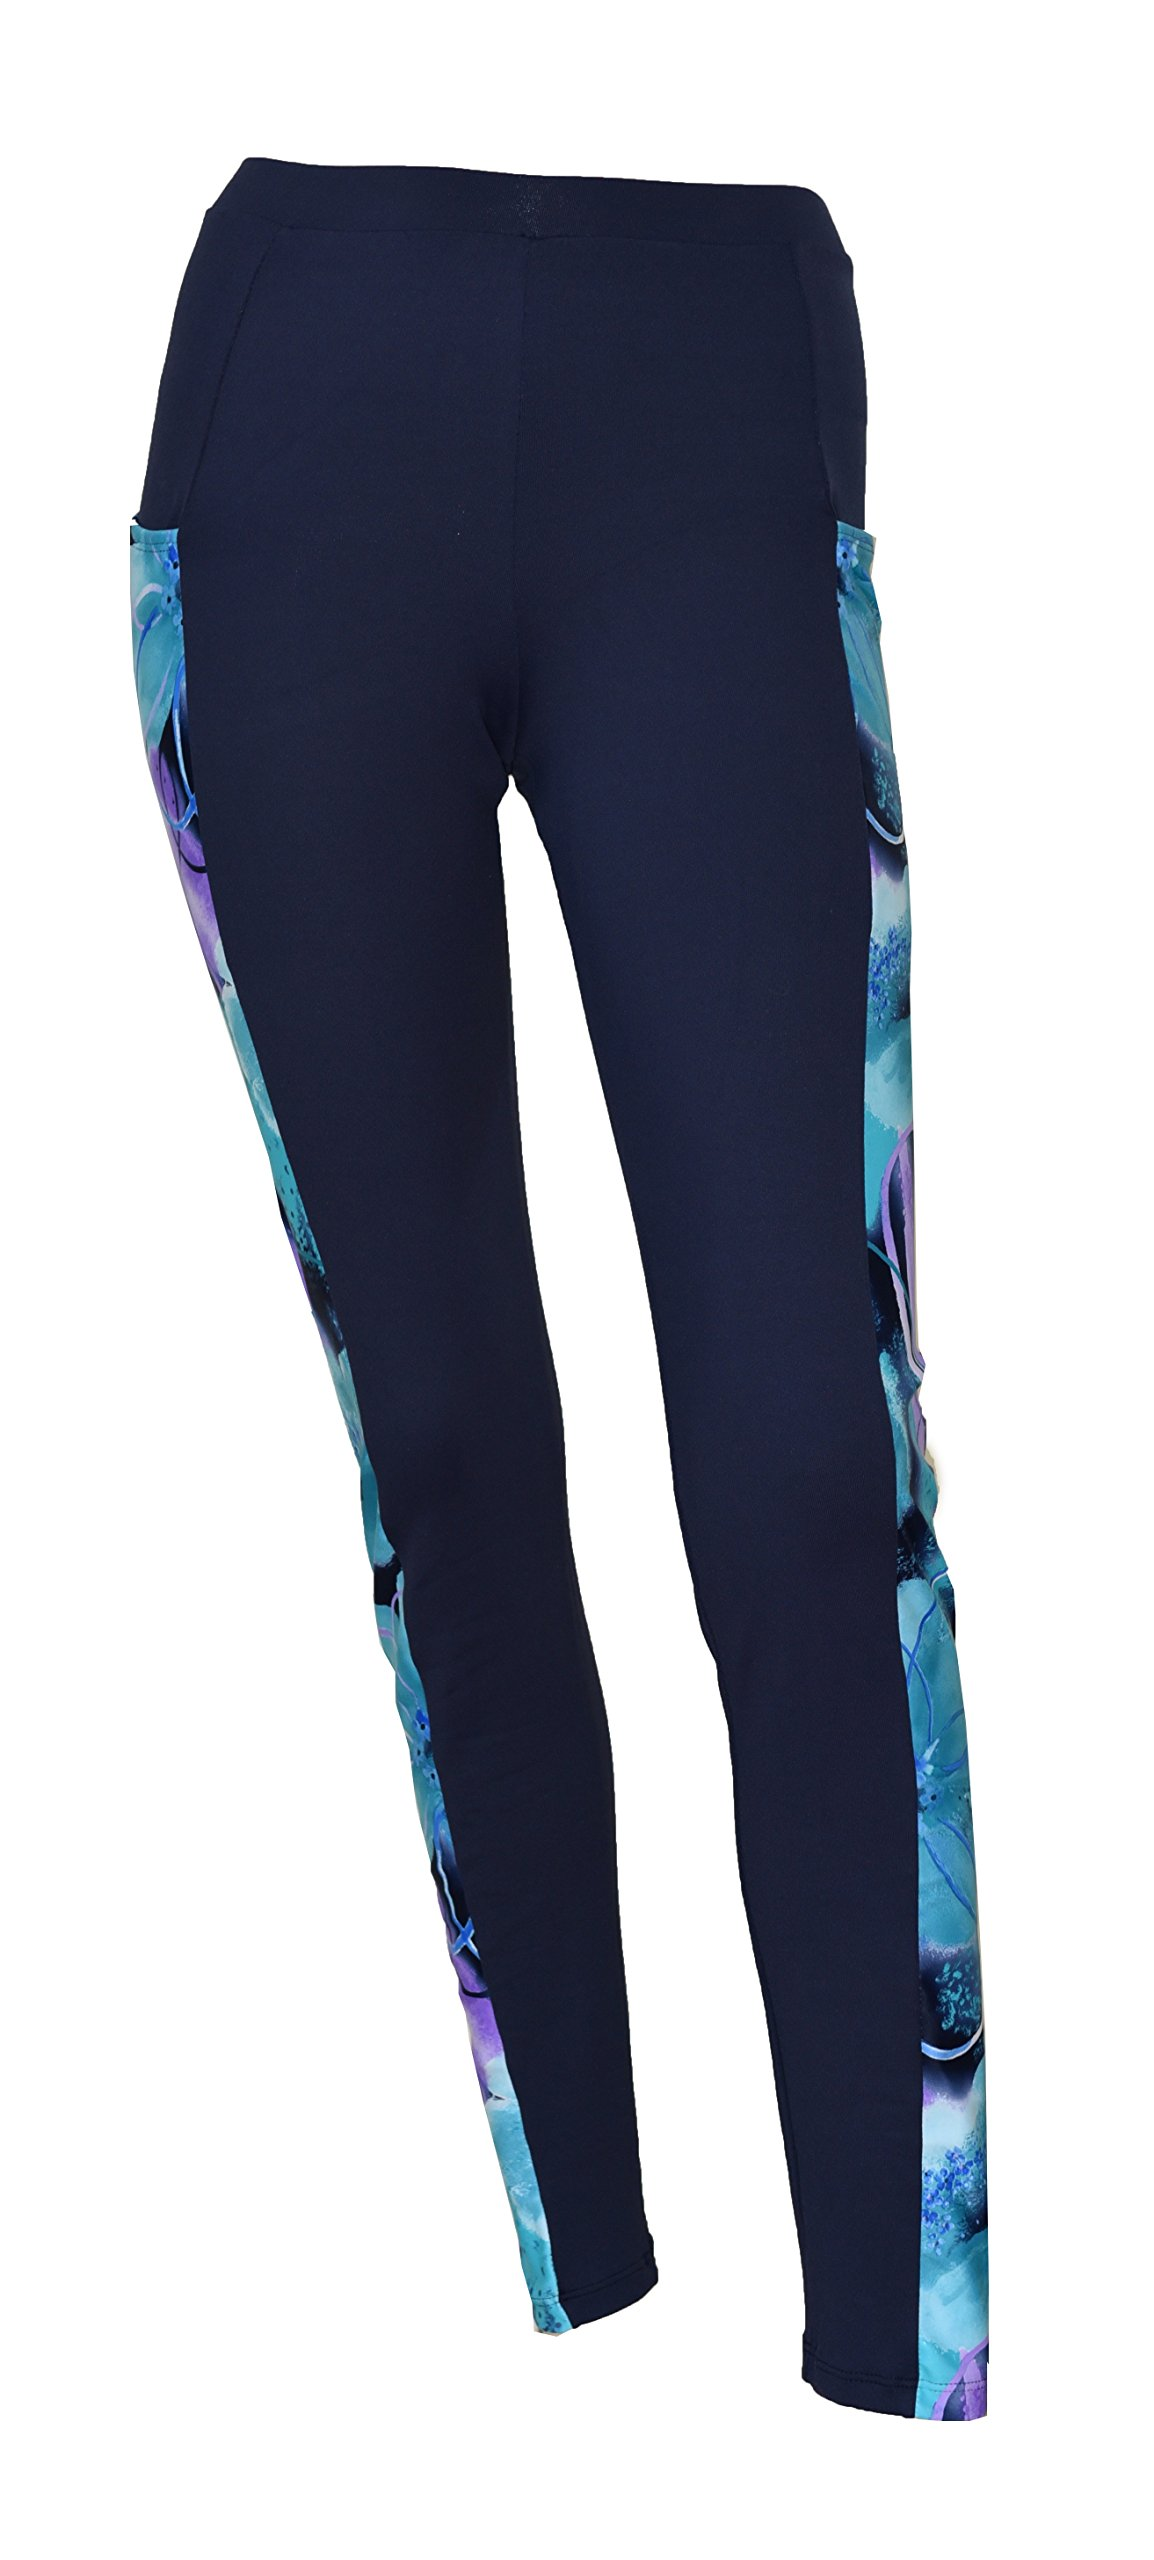 Private Island Hawaii Women UV Rash Guard Leggings Long Pants Surfing Sun Protection Swimming Suit Wide Color Scheme with Both Side Pocket Navy with Jade Violet Large